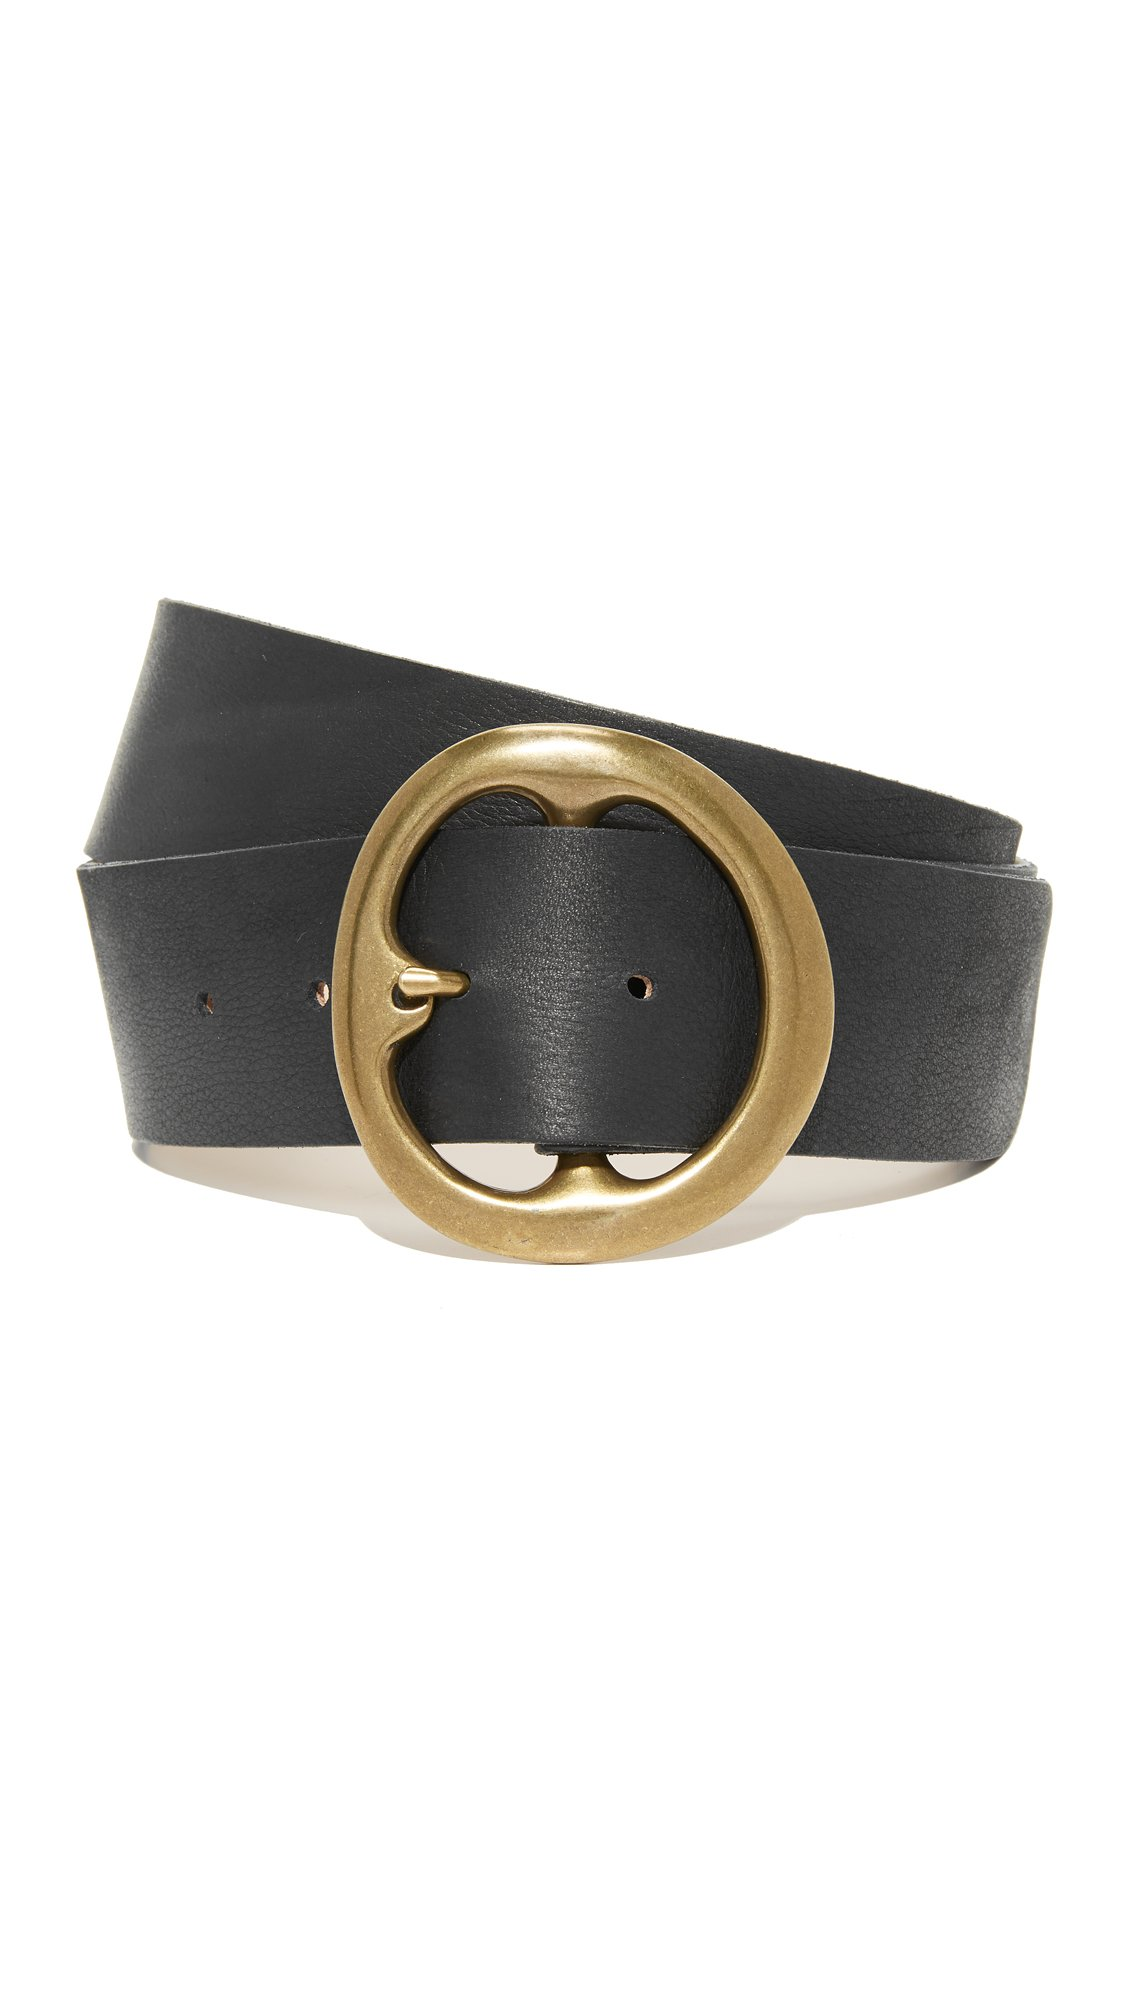 B-Low The Belt Women's Bell Bottom Belt, Black/Brass, Small